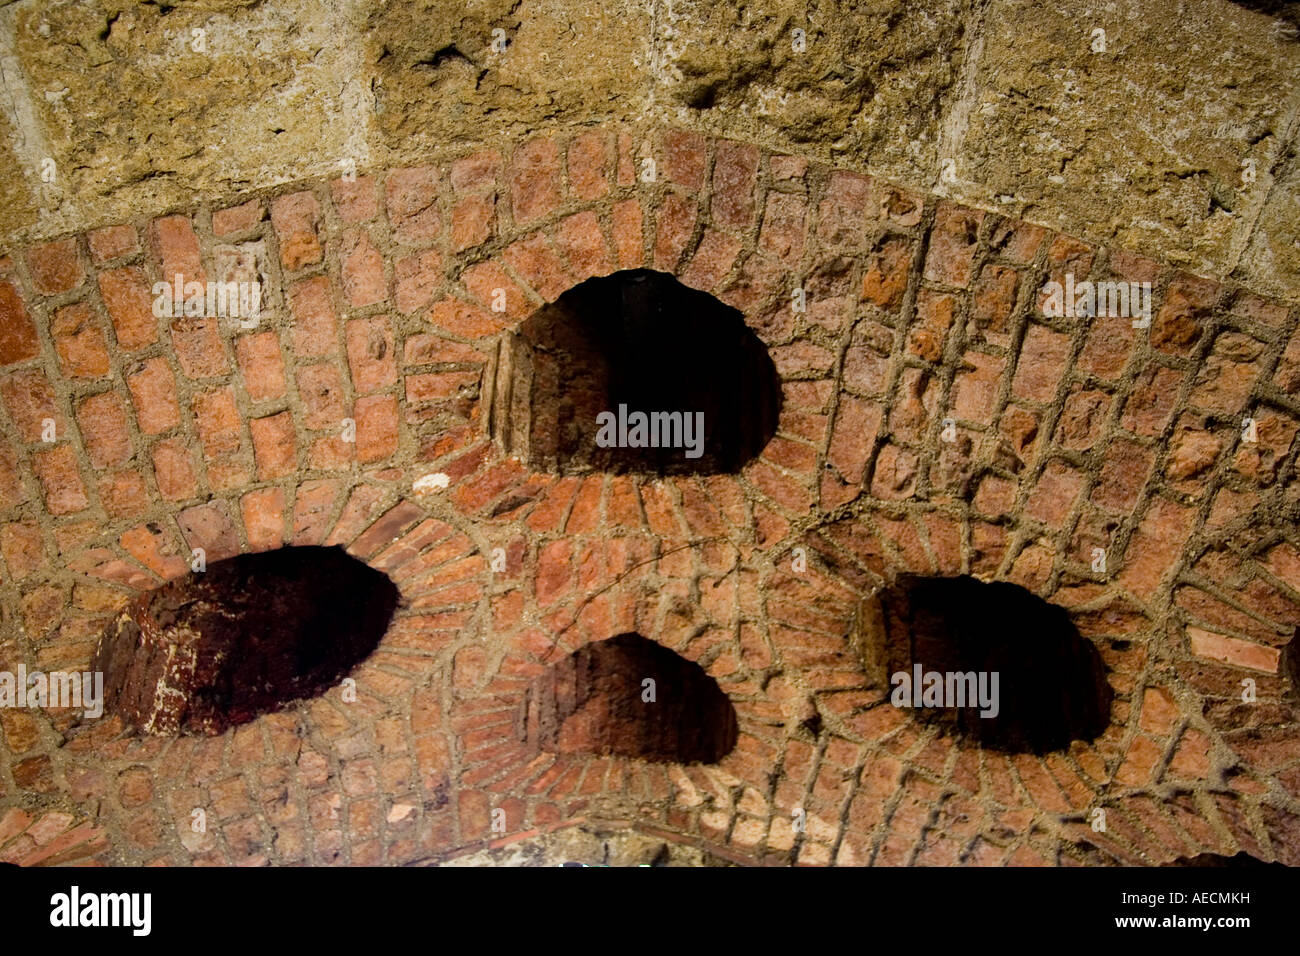 Walmer castle, Kent, England. Defensive dropping holes, 'murder holes' in ceiling above entrance - Stock Image